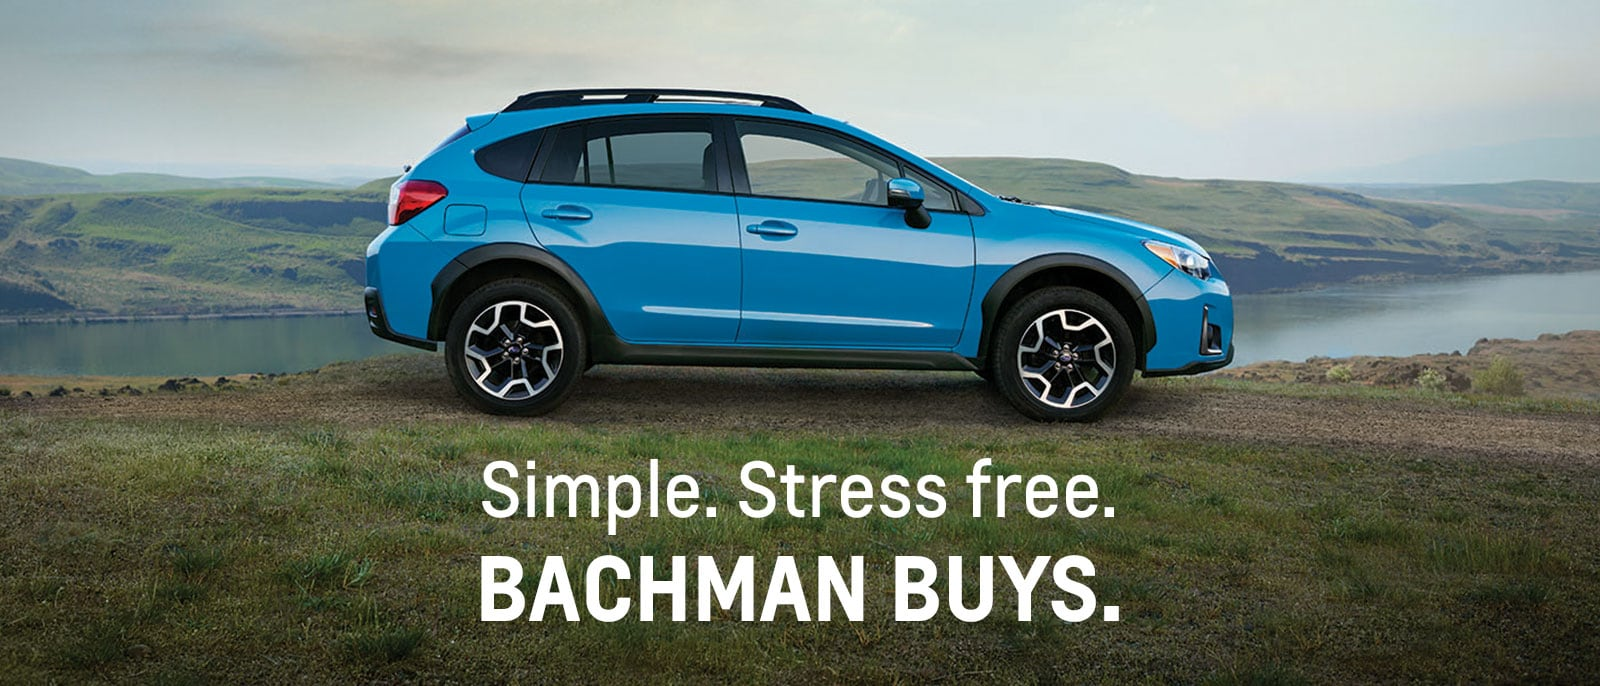 sell your used car in louisville kentucky bachman subaru buys used cars in louisville ky. Black Bedroom Furniture Sets. Home Design Ideas